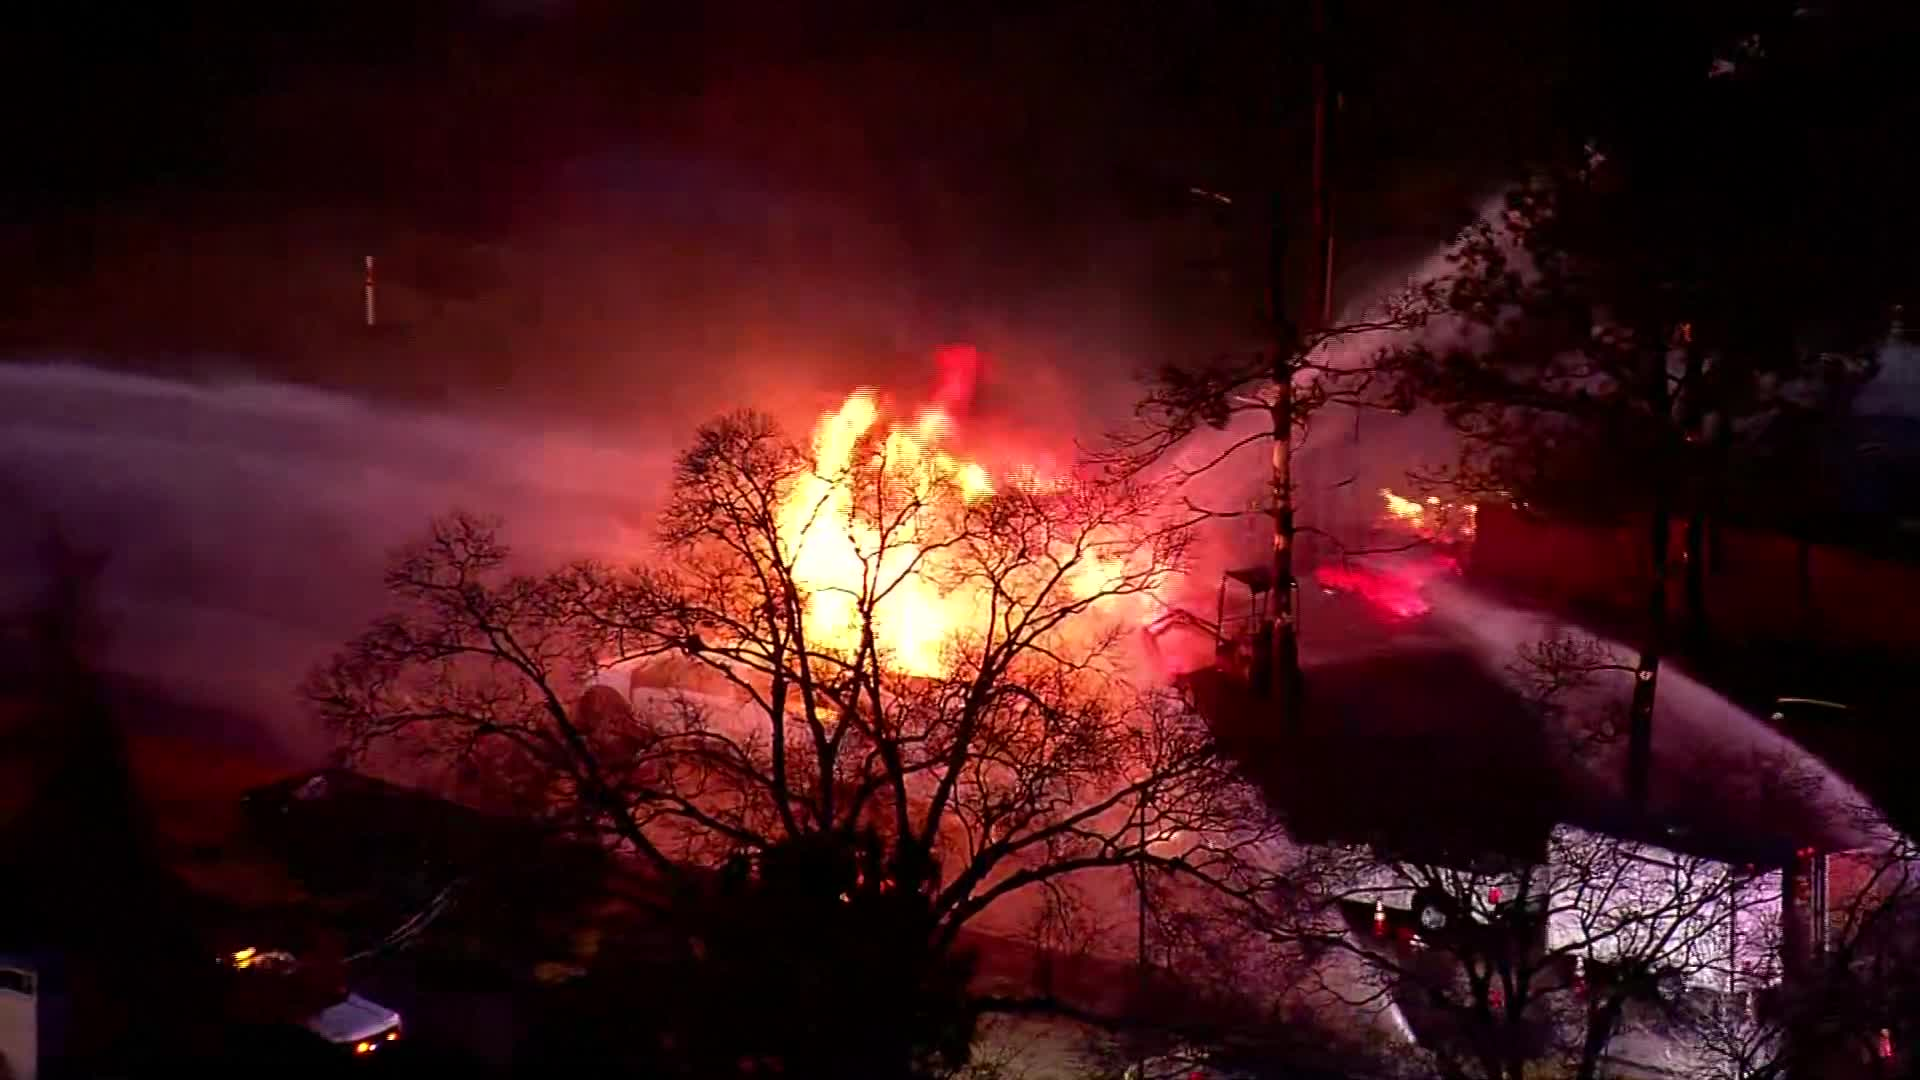 Several people were hurt following a large natural gas explosion and fire in a town less than an hour outside of Houston Friday night (KPRC Photo)